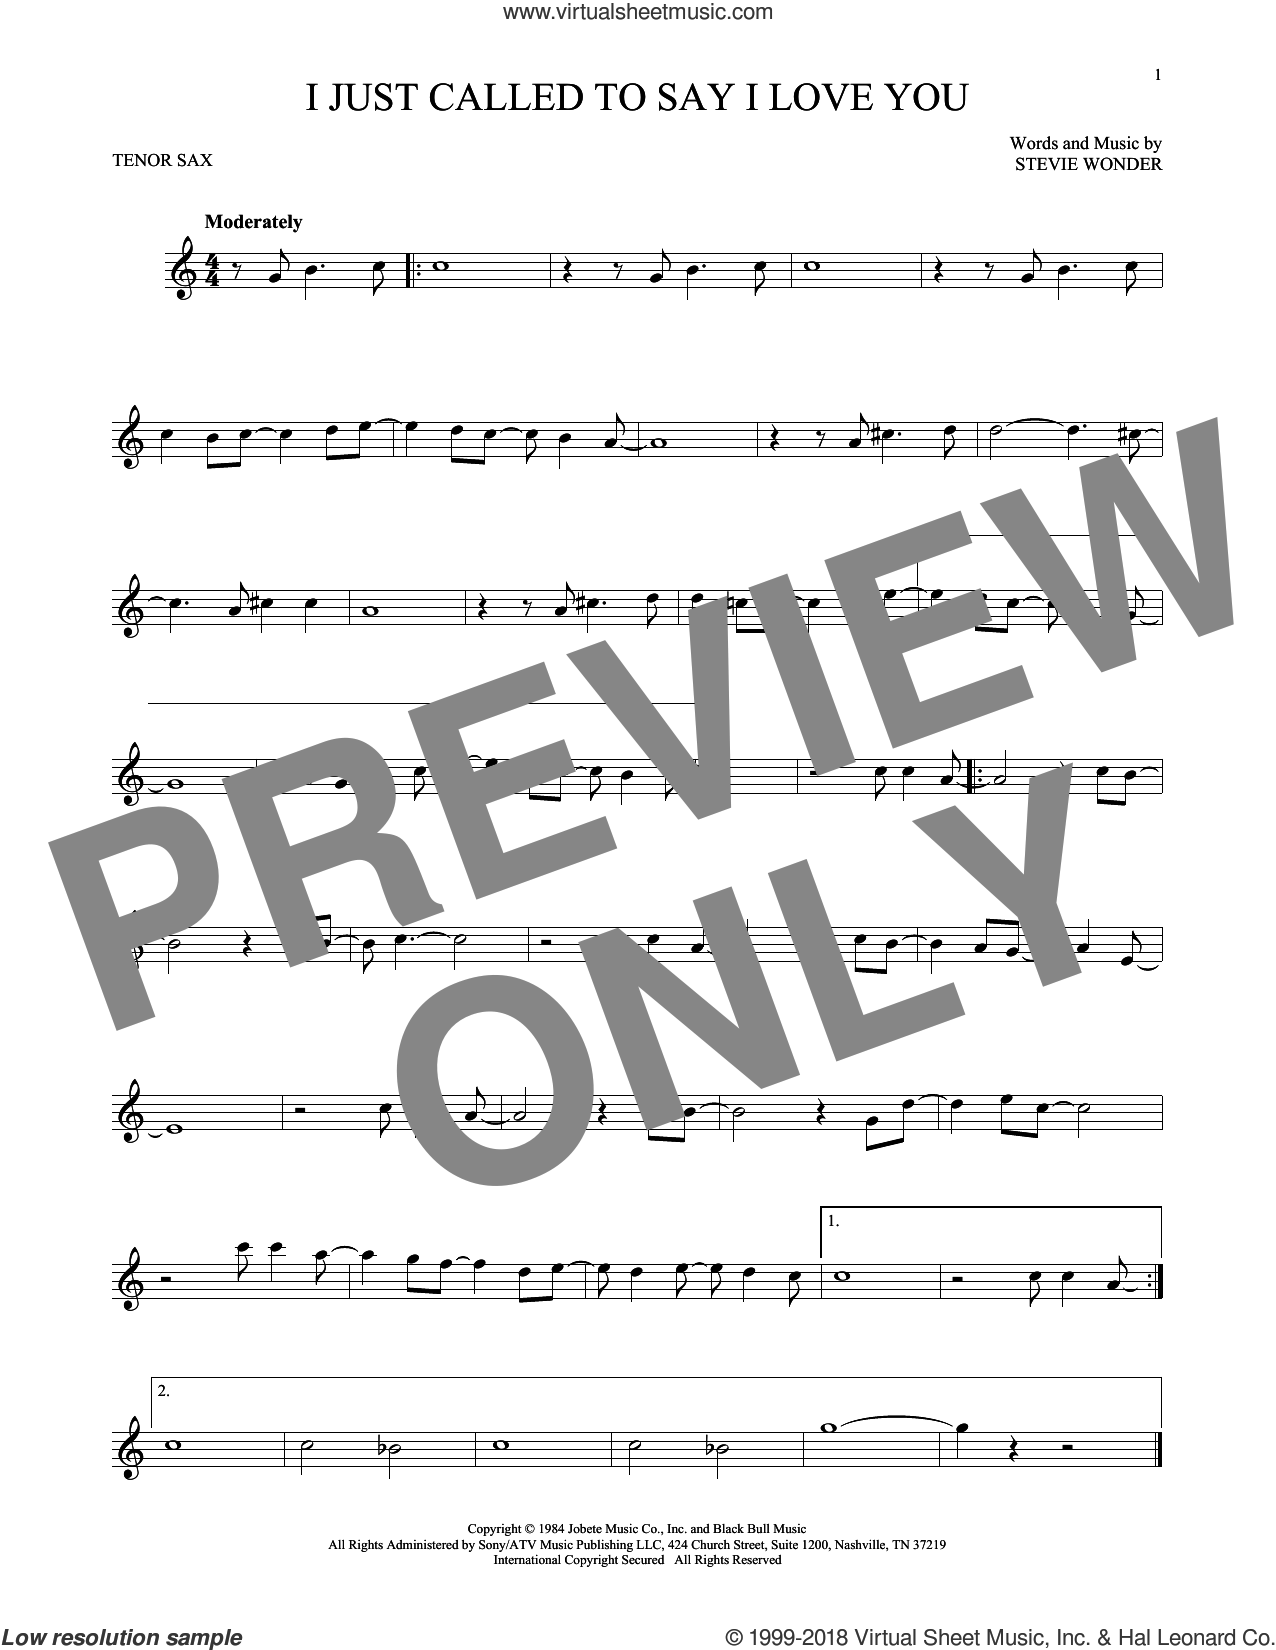 I Just Called To Say I Love You sheet music for tenor saxophone solo by Stevie Wonder, intermediate skill level